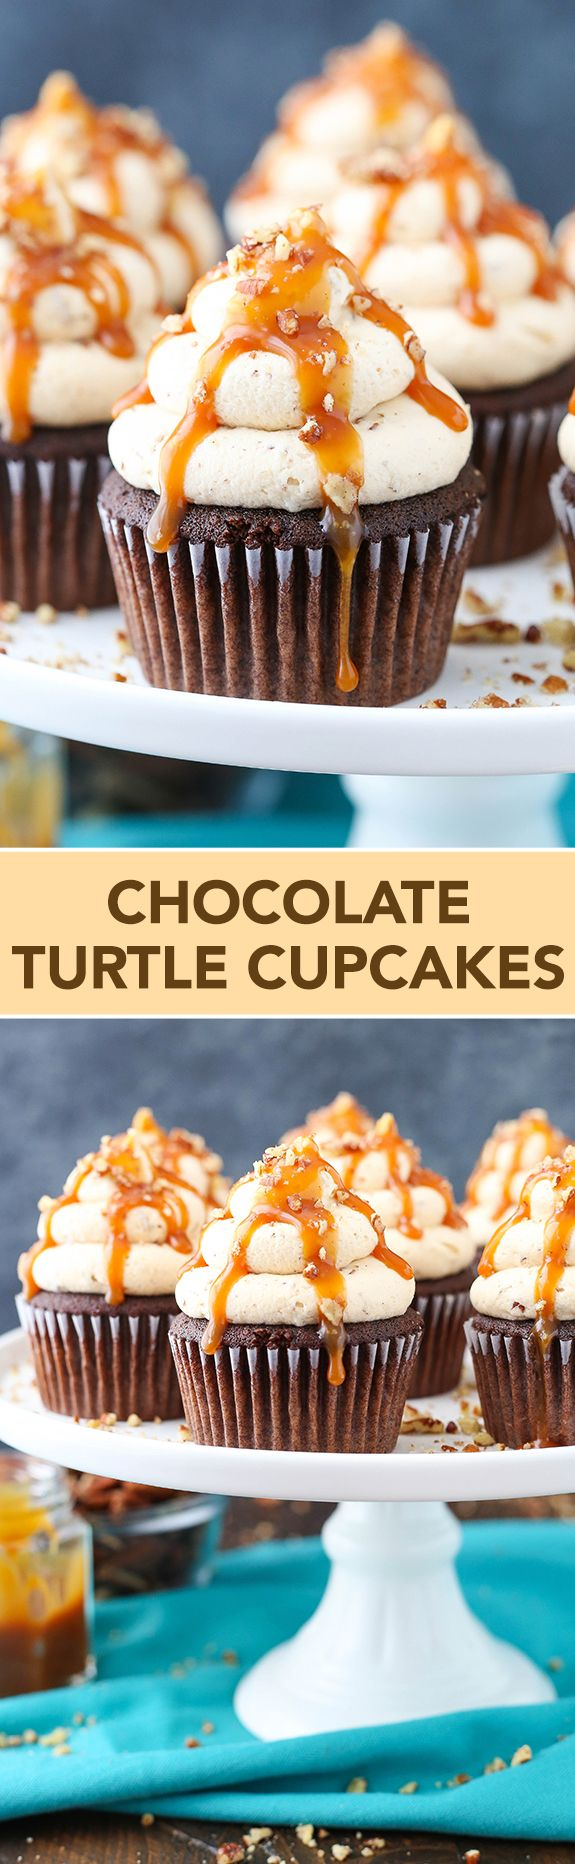 Chocolate Turtle Cupcakes - chocolate cupcakes topped with caramel pecan frosting, caramel drizzle and chopped pecans: